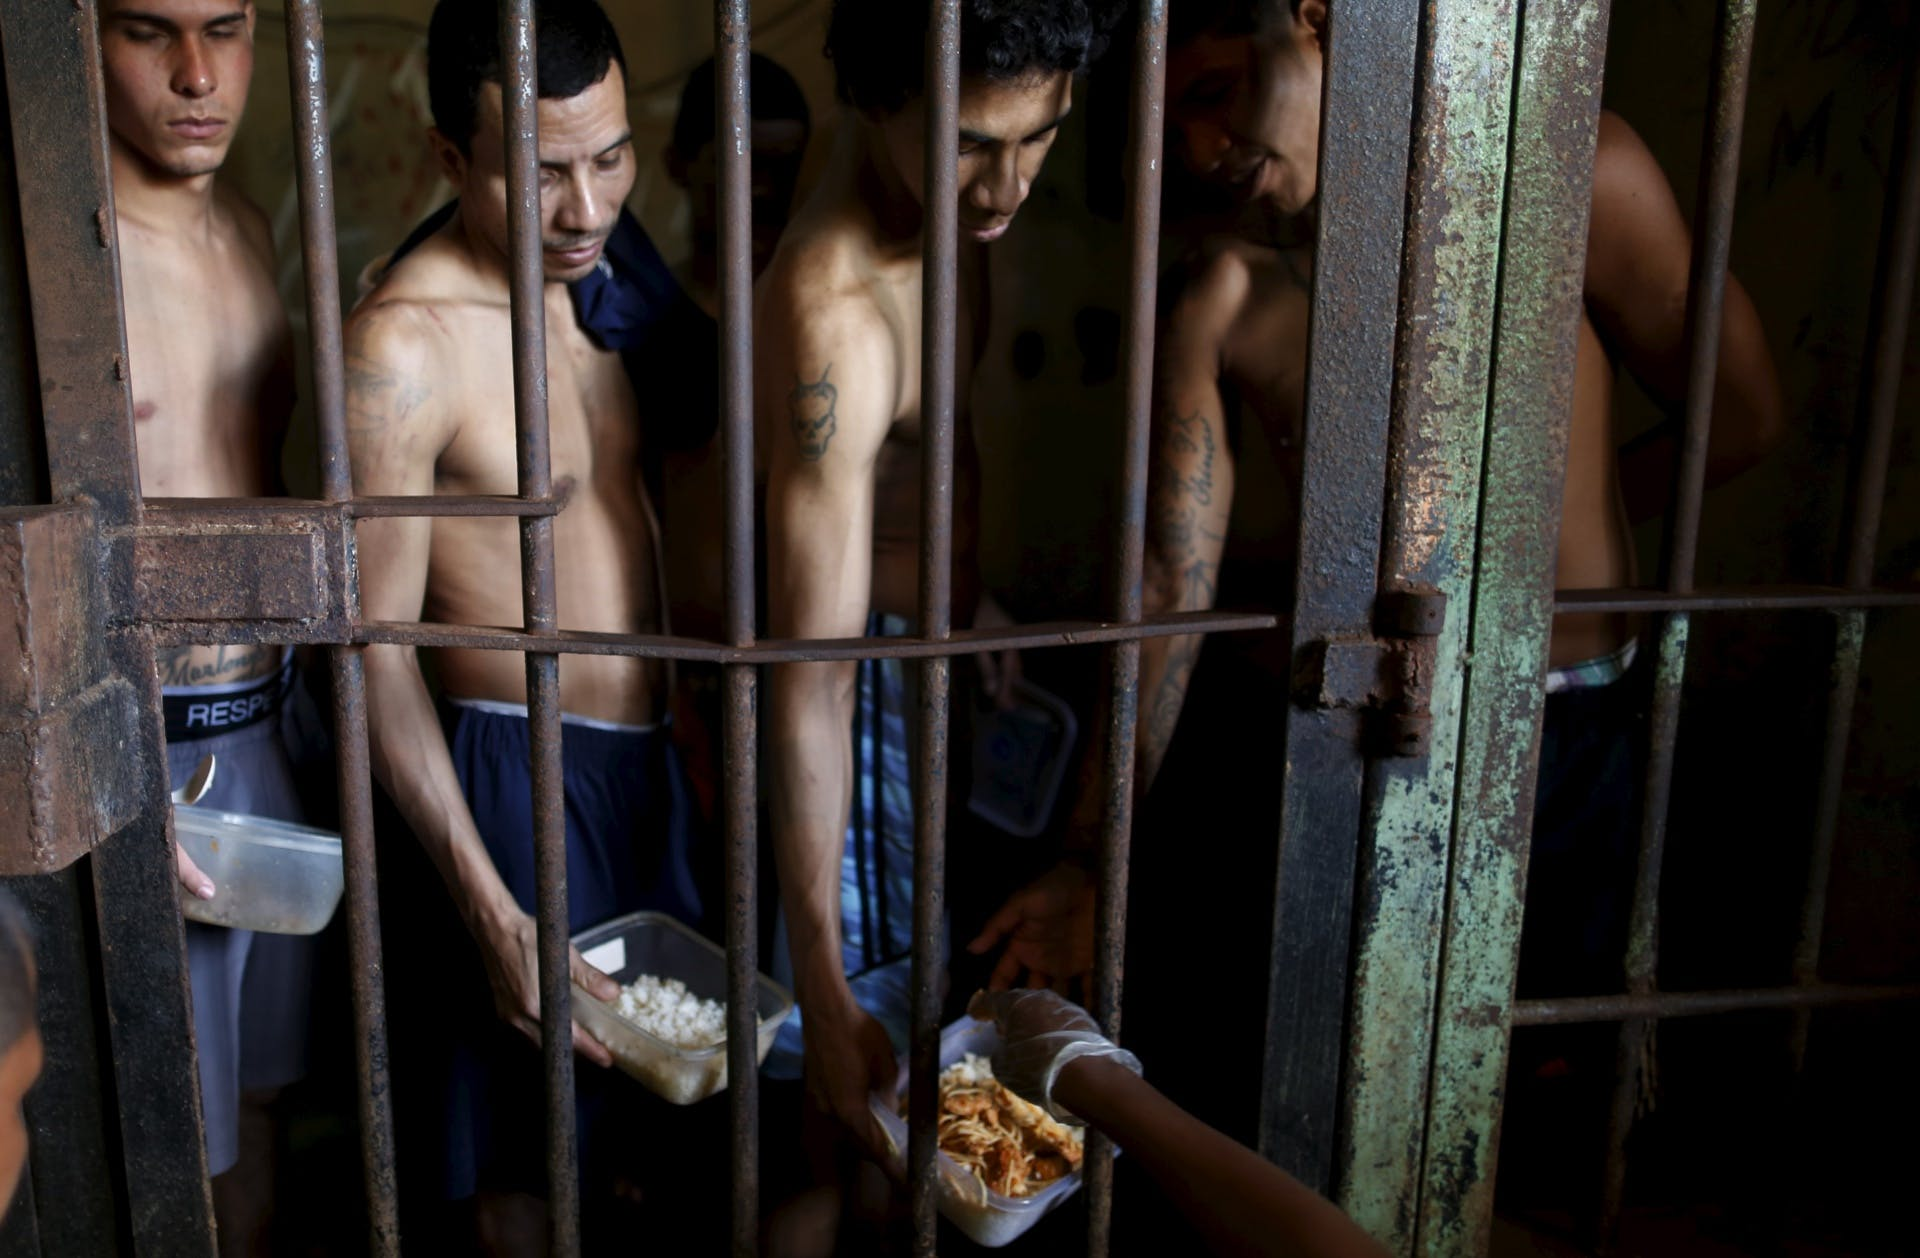 """Inmates line up for food provided by the prison in Pavilion No.2 in La Joya prison on the outskirts of Panama City, Panama January 27, 2016. Inmates of La Joya prison on the outskirts of Panama City are housed in makeshift cells amid heavy overcrowding, living in grimy conditions and with limited medical attention. Many prisoners in the Central American nation languish for years without being sentenced.  REUTERS/Carlos Jasso SEARCH """"PANAMA PRISON"""" FOR THIS STORY. SEARCH """"THE WIDER IMAGE"""" FOR ALL STORIES       TPX IMAGES OF THE DAY      - RTX29RCO"""